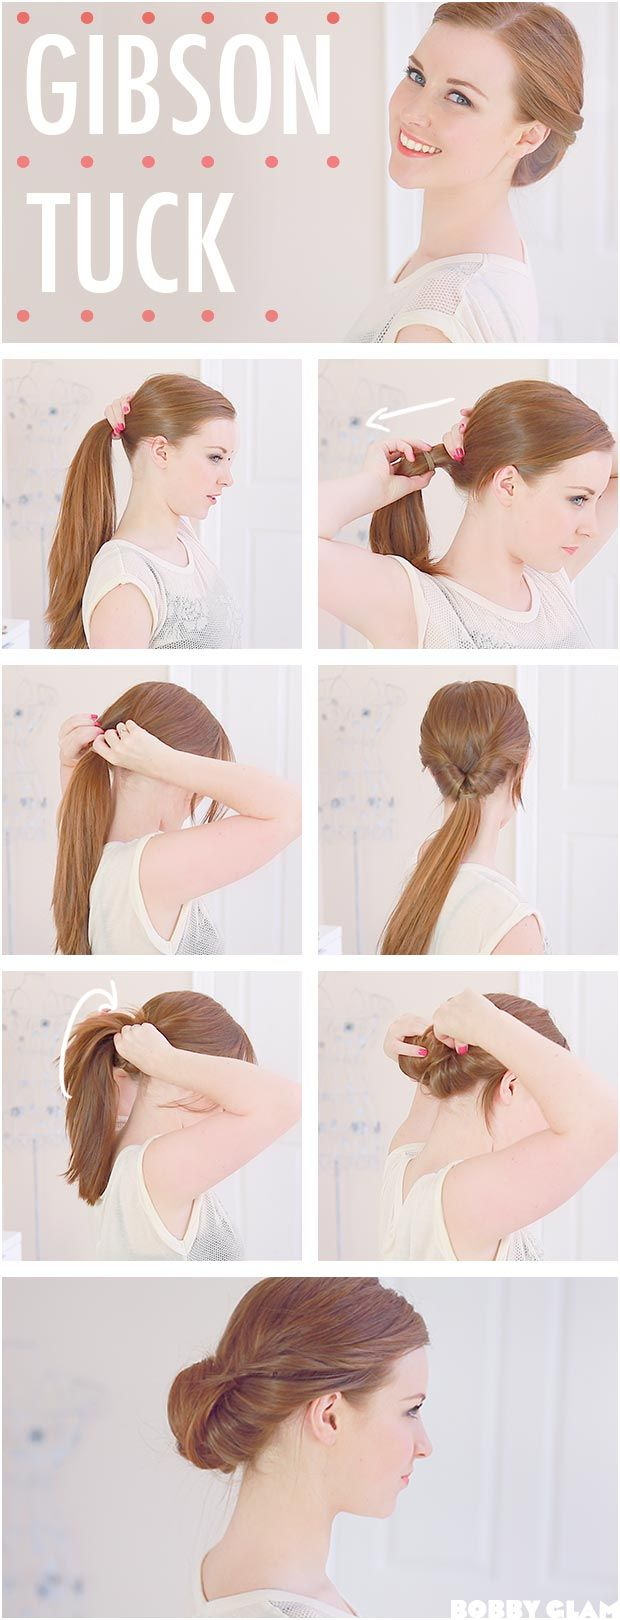 Hair Tutorials: 20 ways to style your hair in the summer – Hair tips